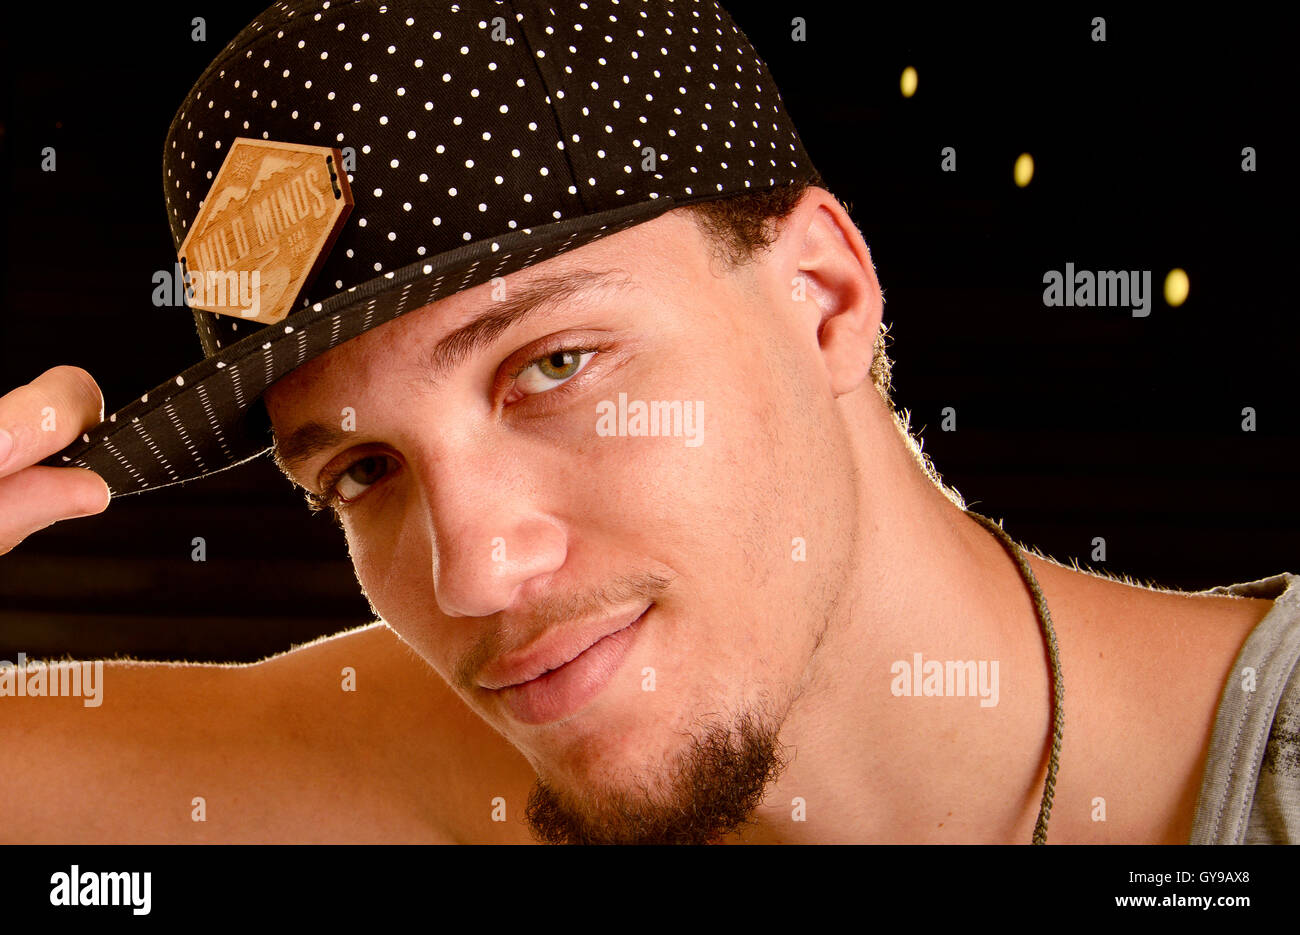 A 21-year-old man wearing a cap poses for a portrait, Tucson, Arizona, USA. - Stock Image